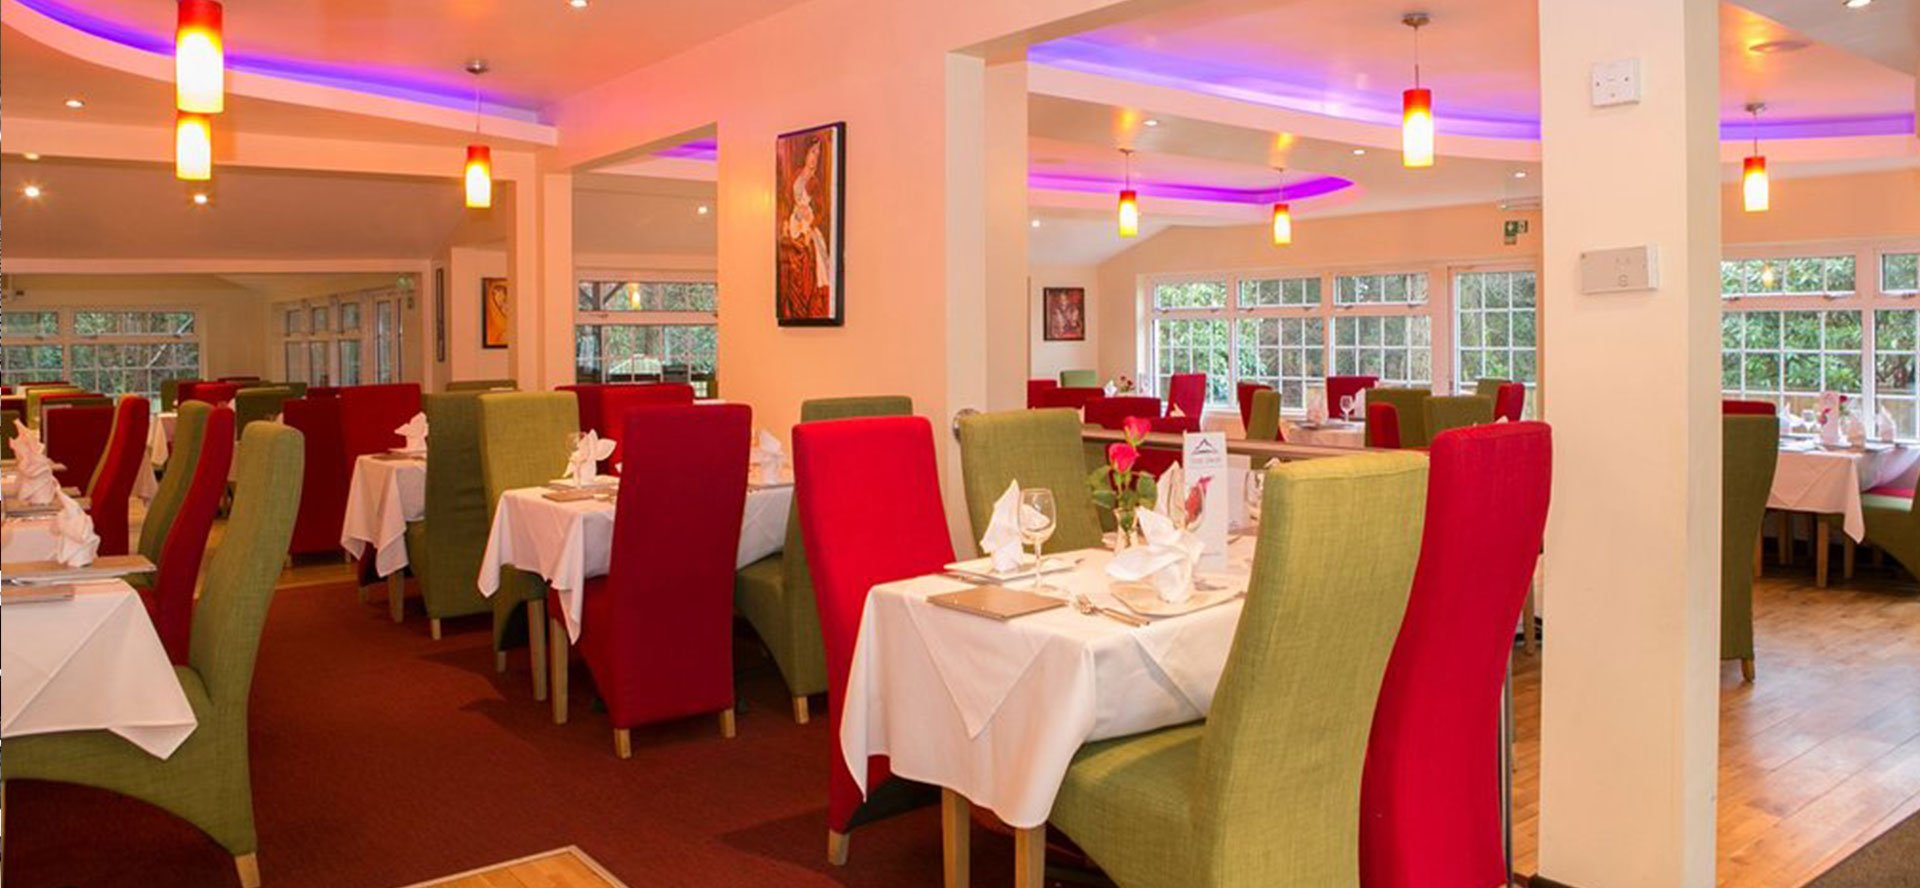 The 29029 Restaurant Wareham UK